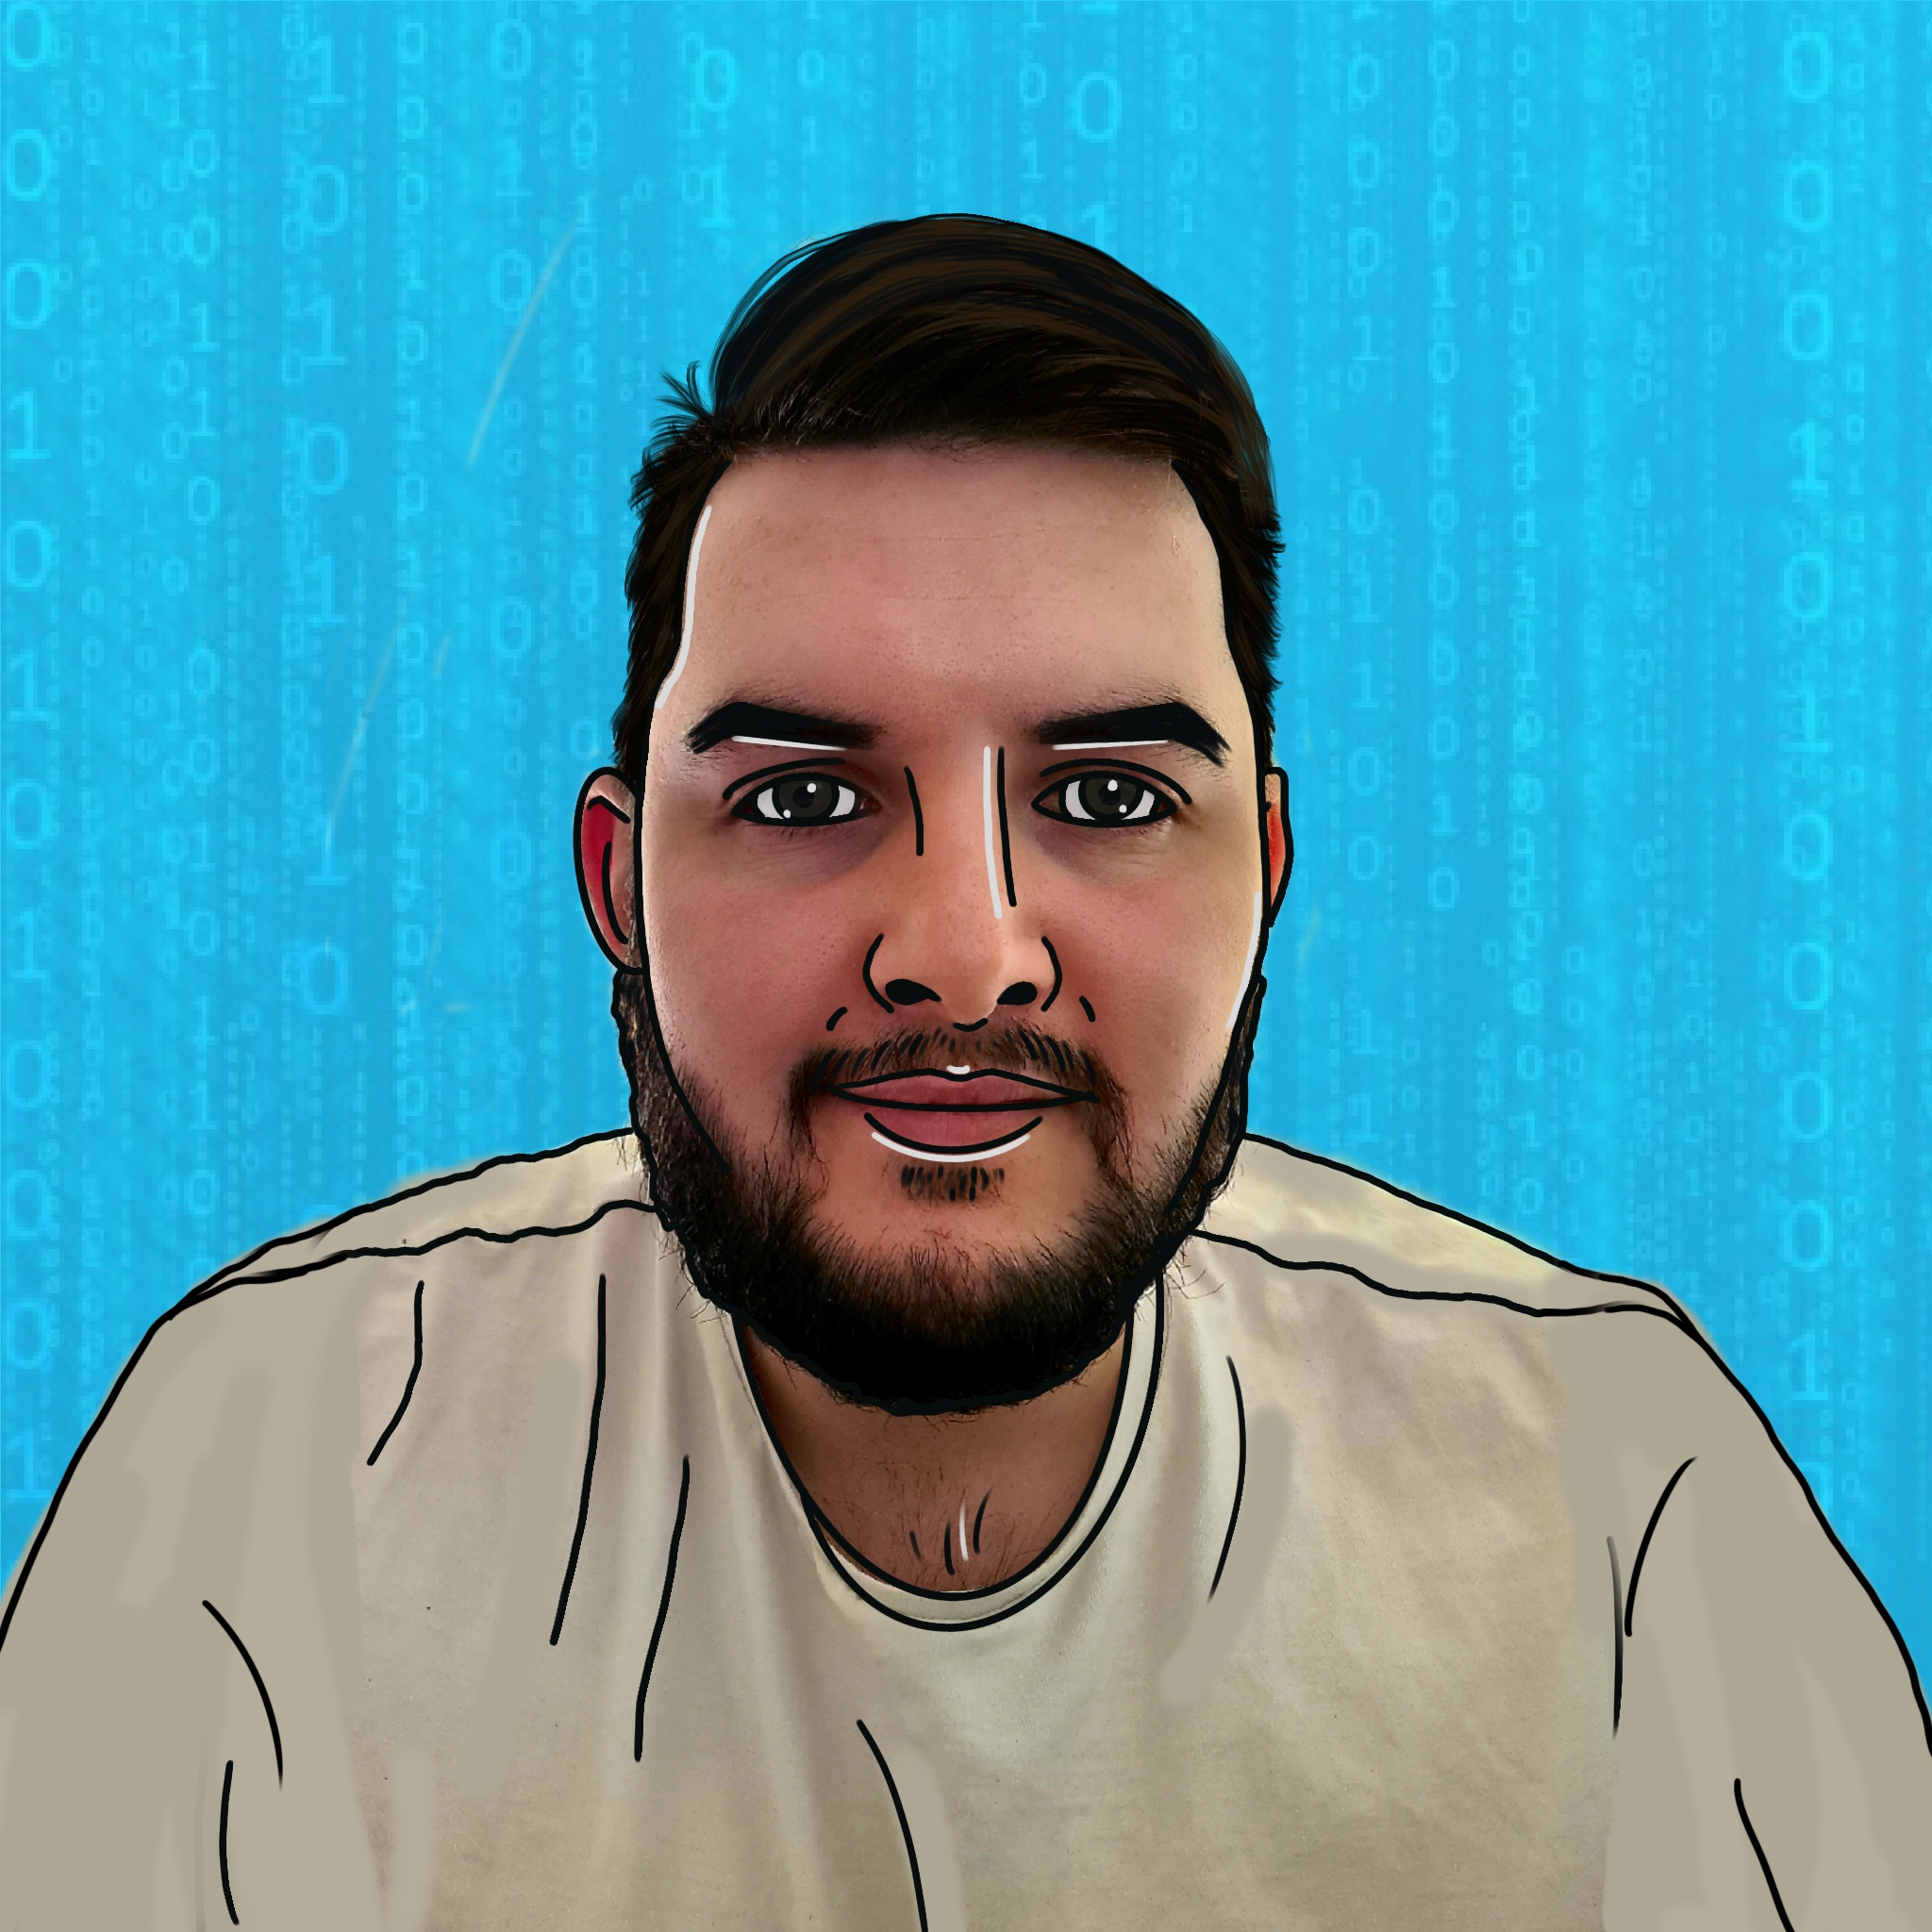 Cartoon image of Declan on a blue background.